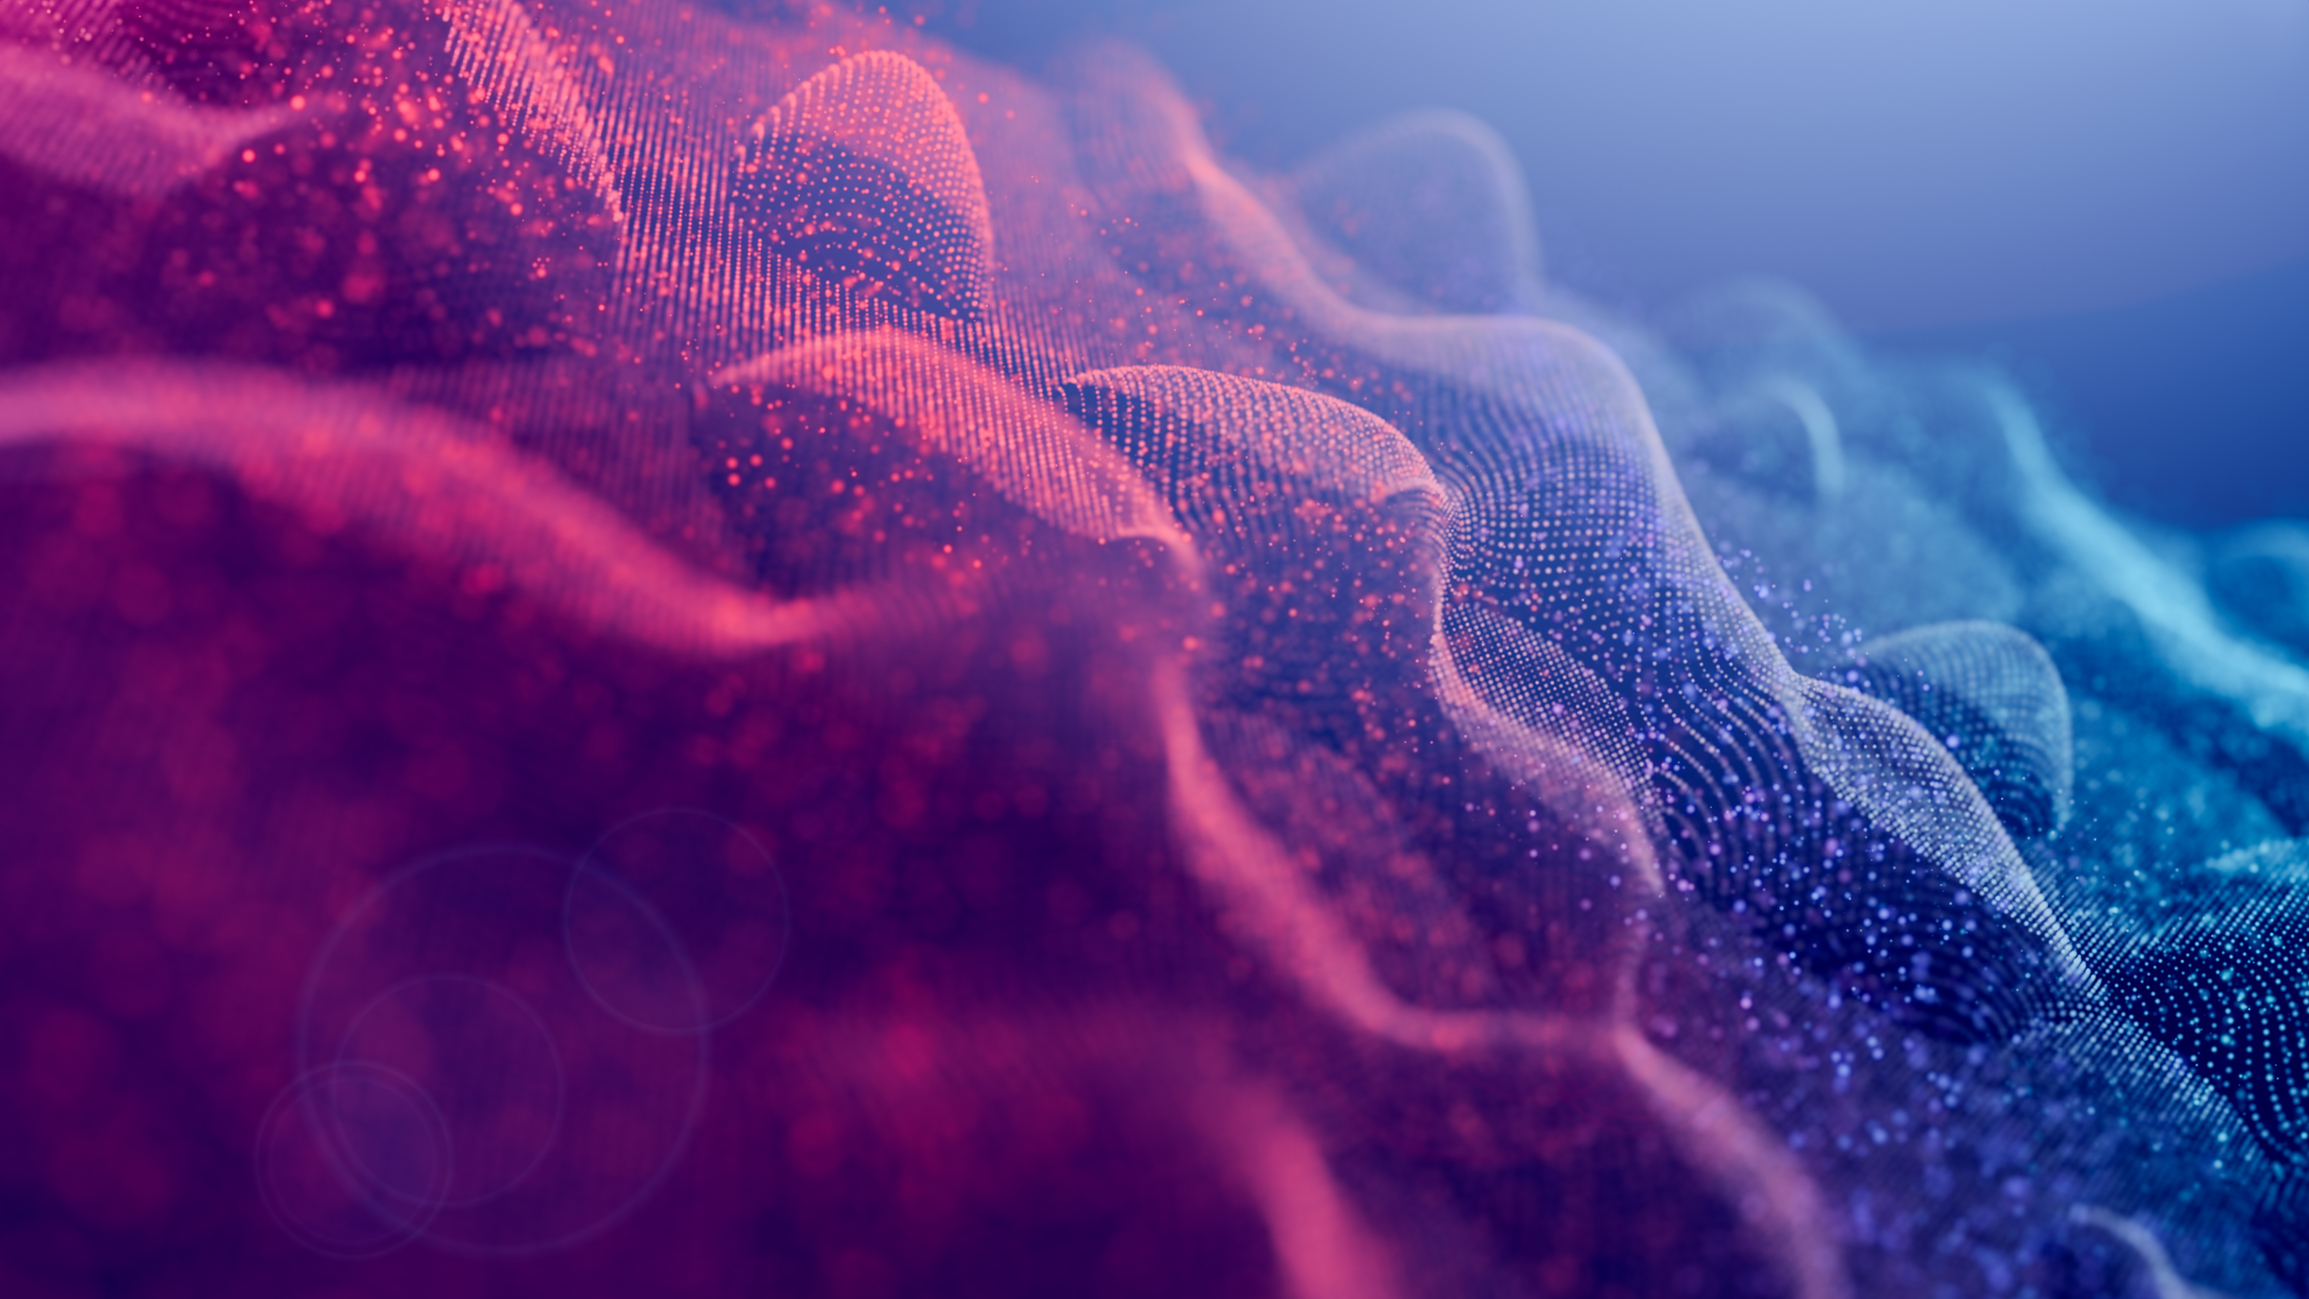 Abstract background with waved particles curve